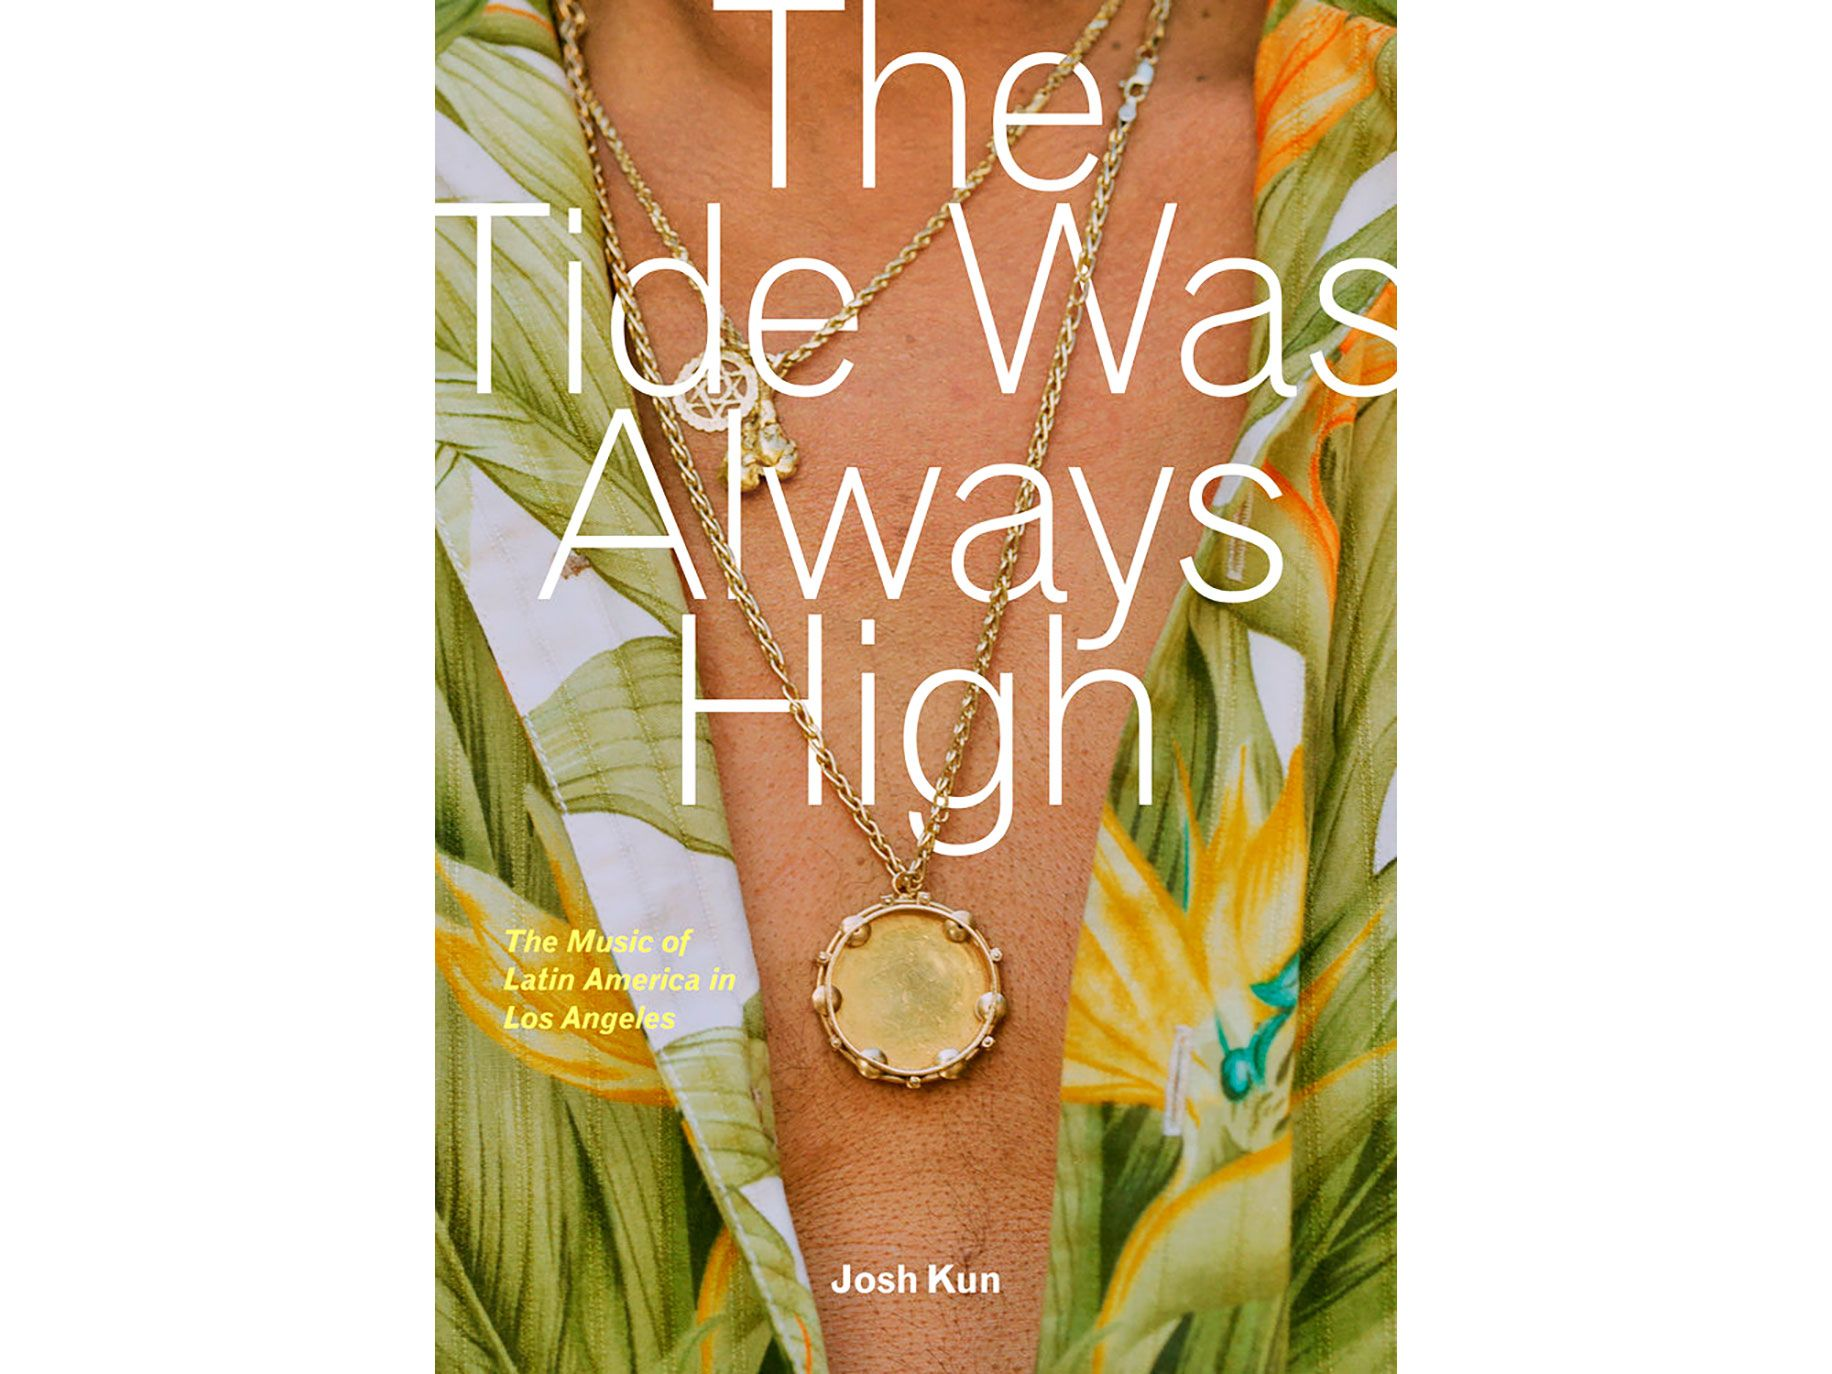 """""""The Tide Was Always High: The Music of Latin America in Los Angeles,"""" edited by Josh Kun, 252 pages, University of California Press, $29.95."""